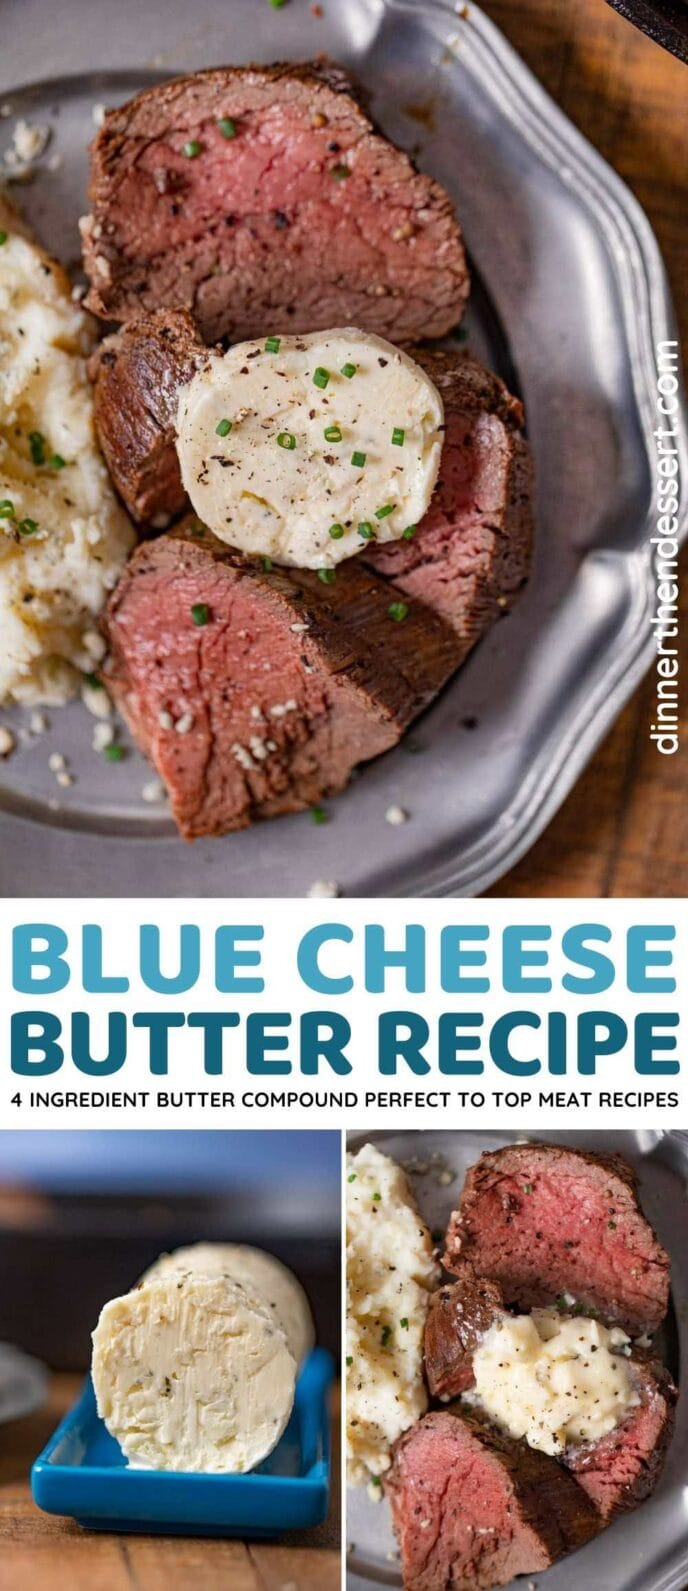 Blue Cheese Butter collage